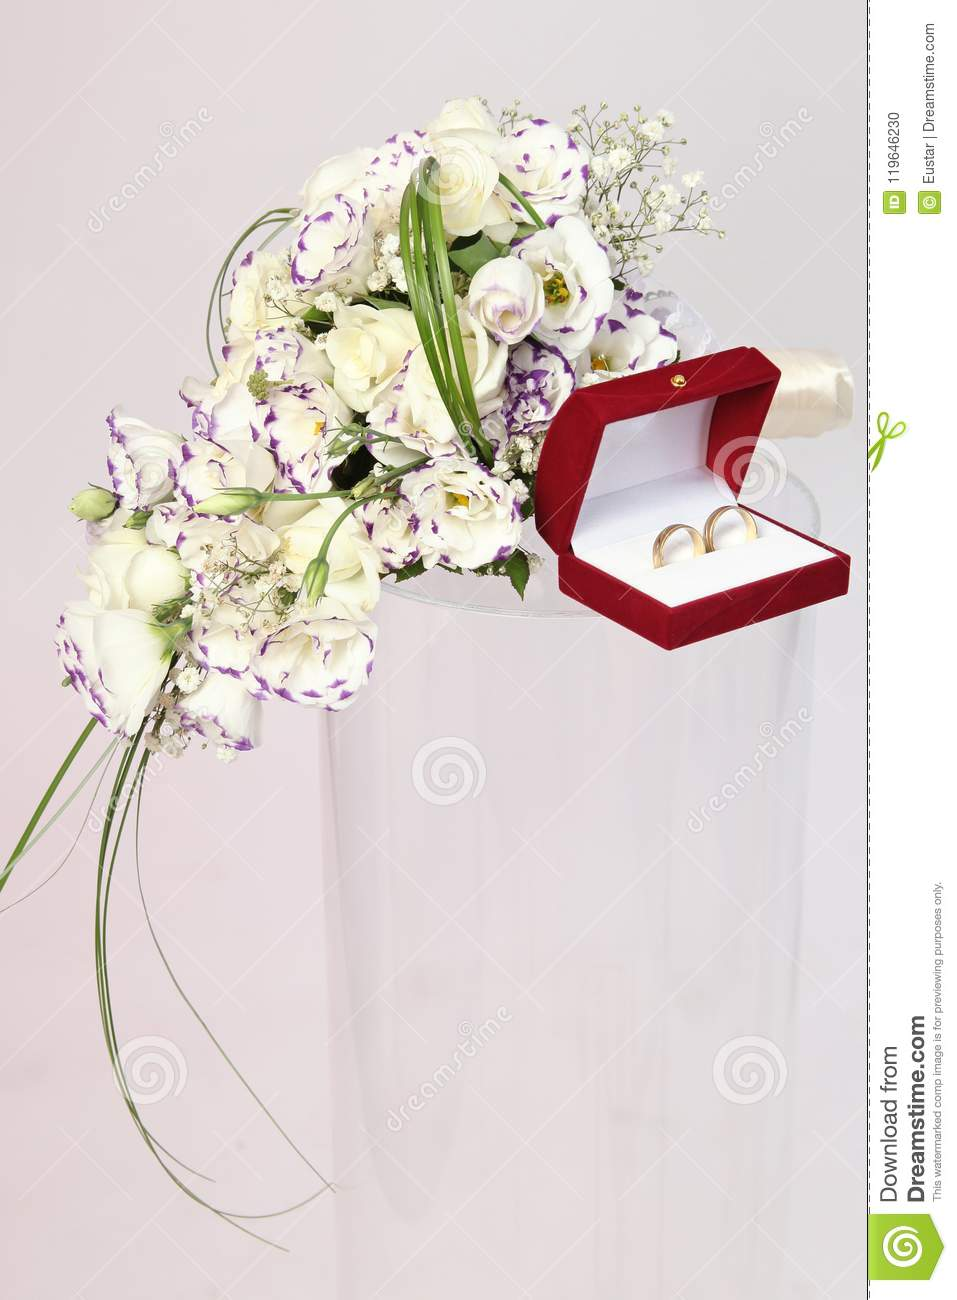 Wedding Rings In Red Box With A White Bridal Bouquet Stock Photo ...